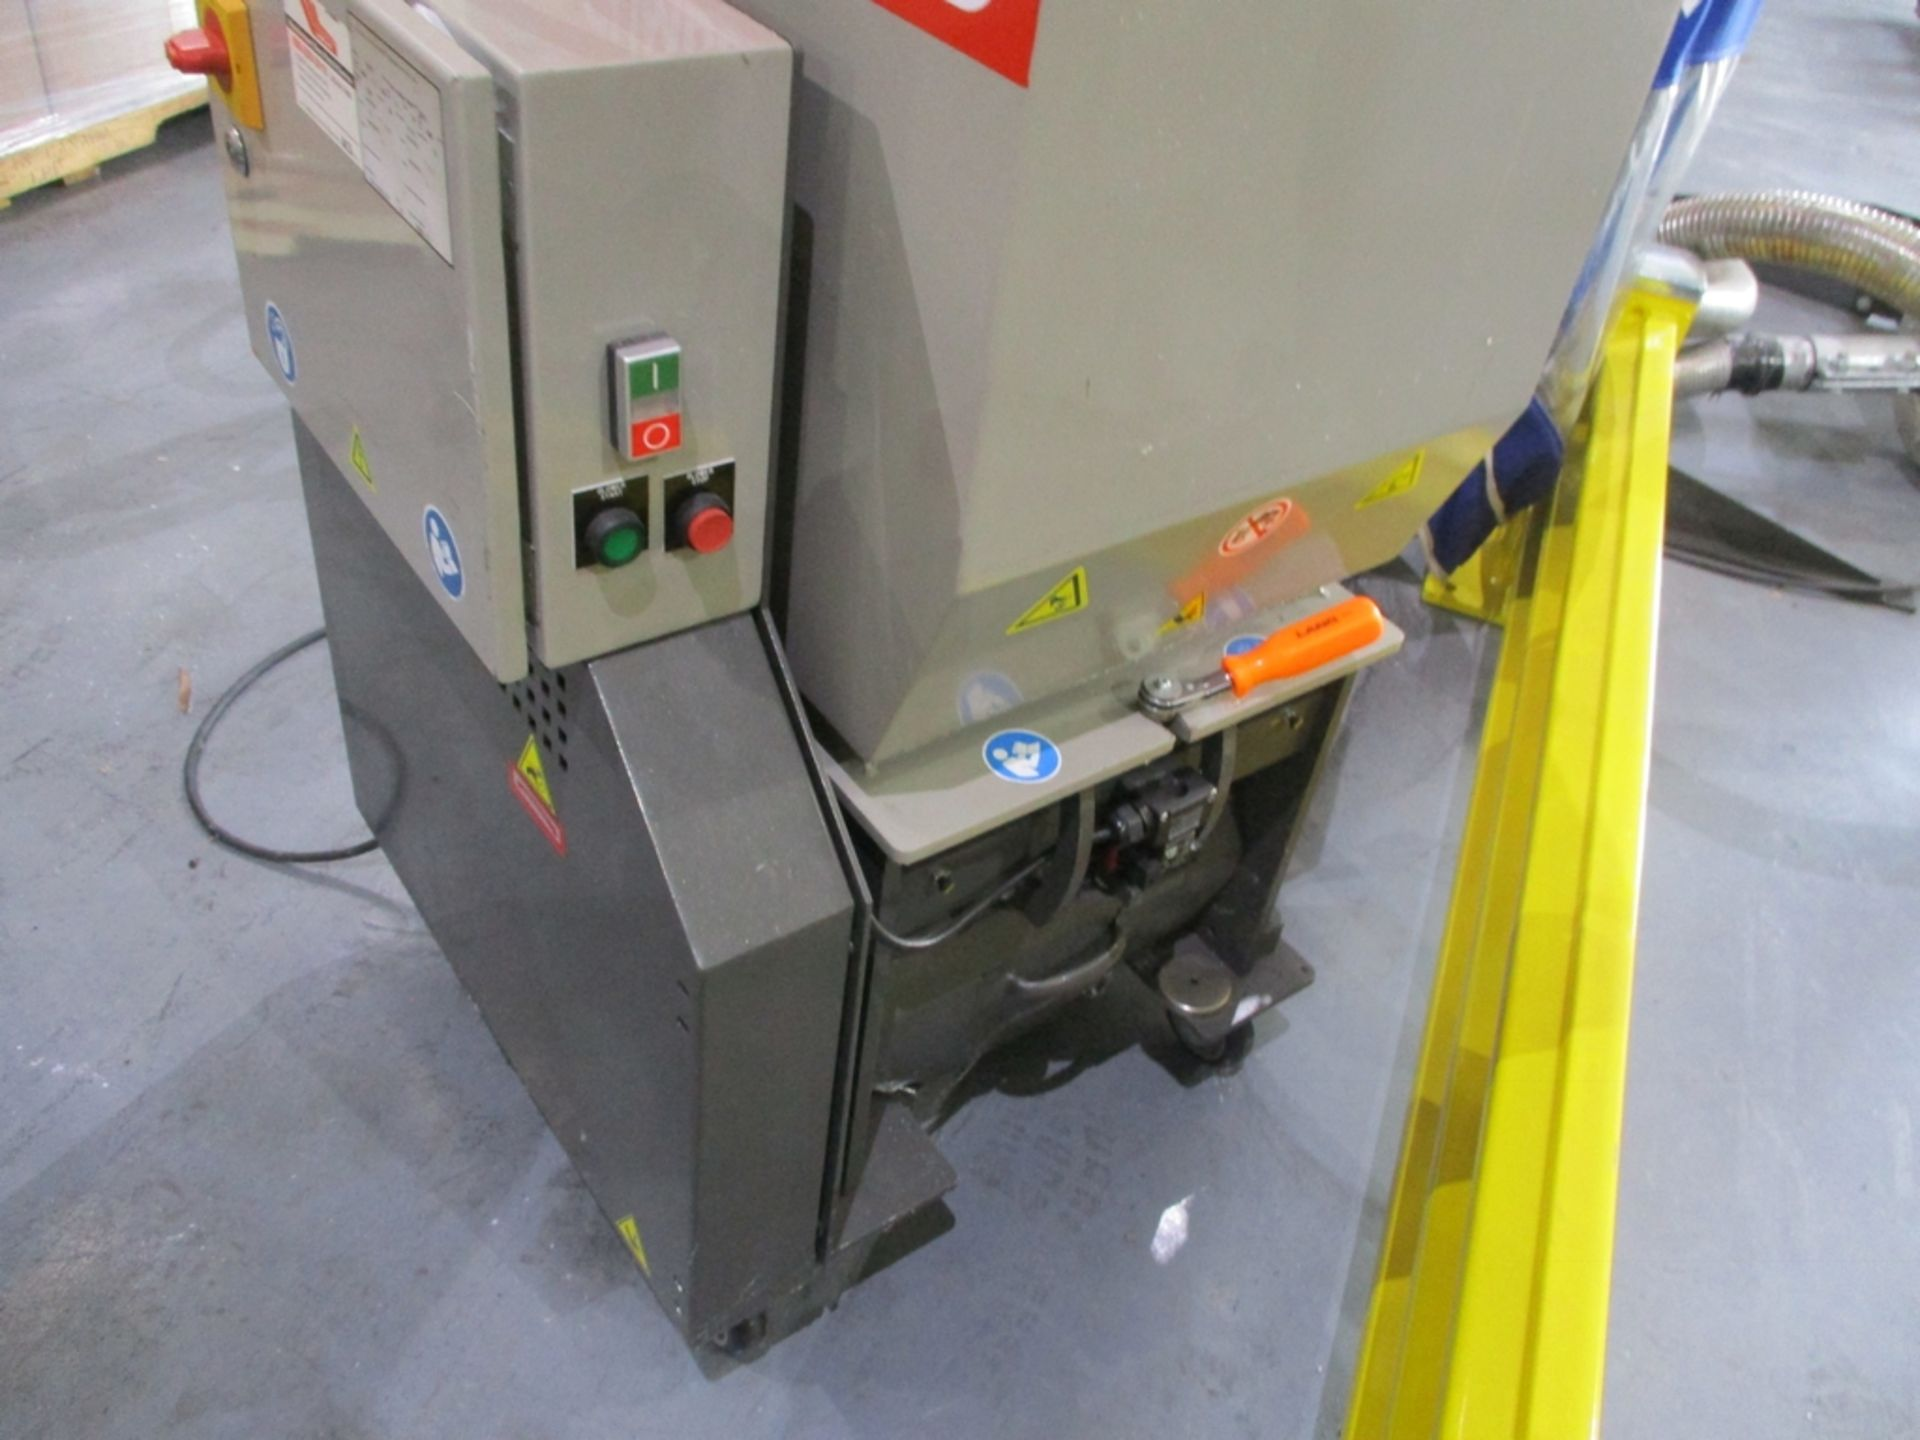 Lot 1003 - 2015 Cumberland 5 HP Scrap Grinder w/ Blower - Model: 6516; Includes Model A24F0 Blower and